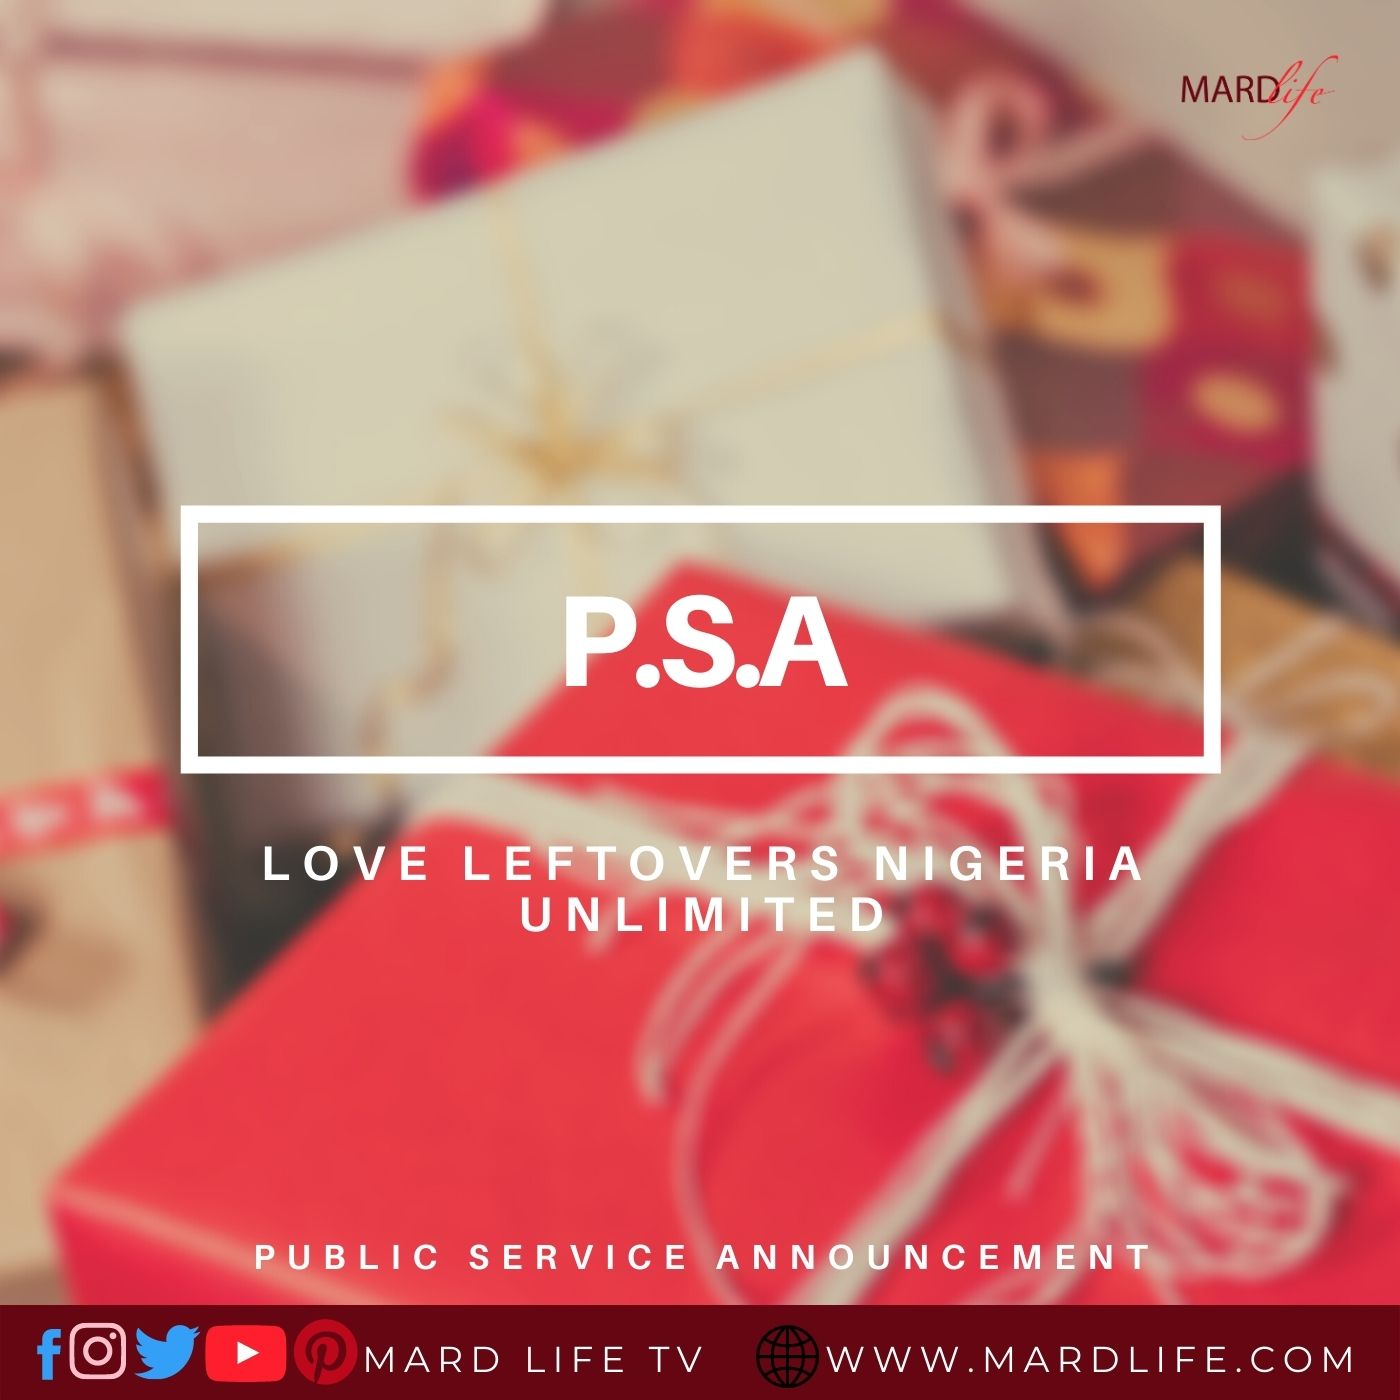 PSA: Love Leftovers Nigeria Unlimited